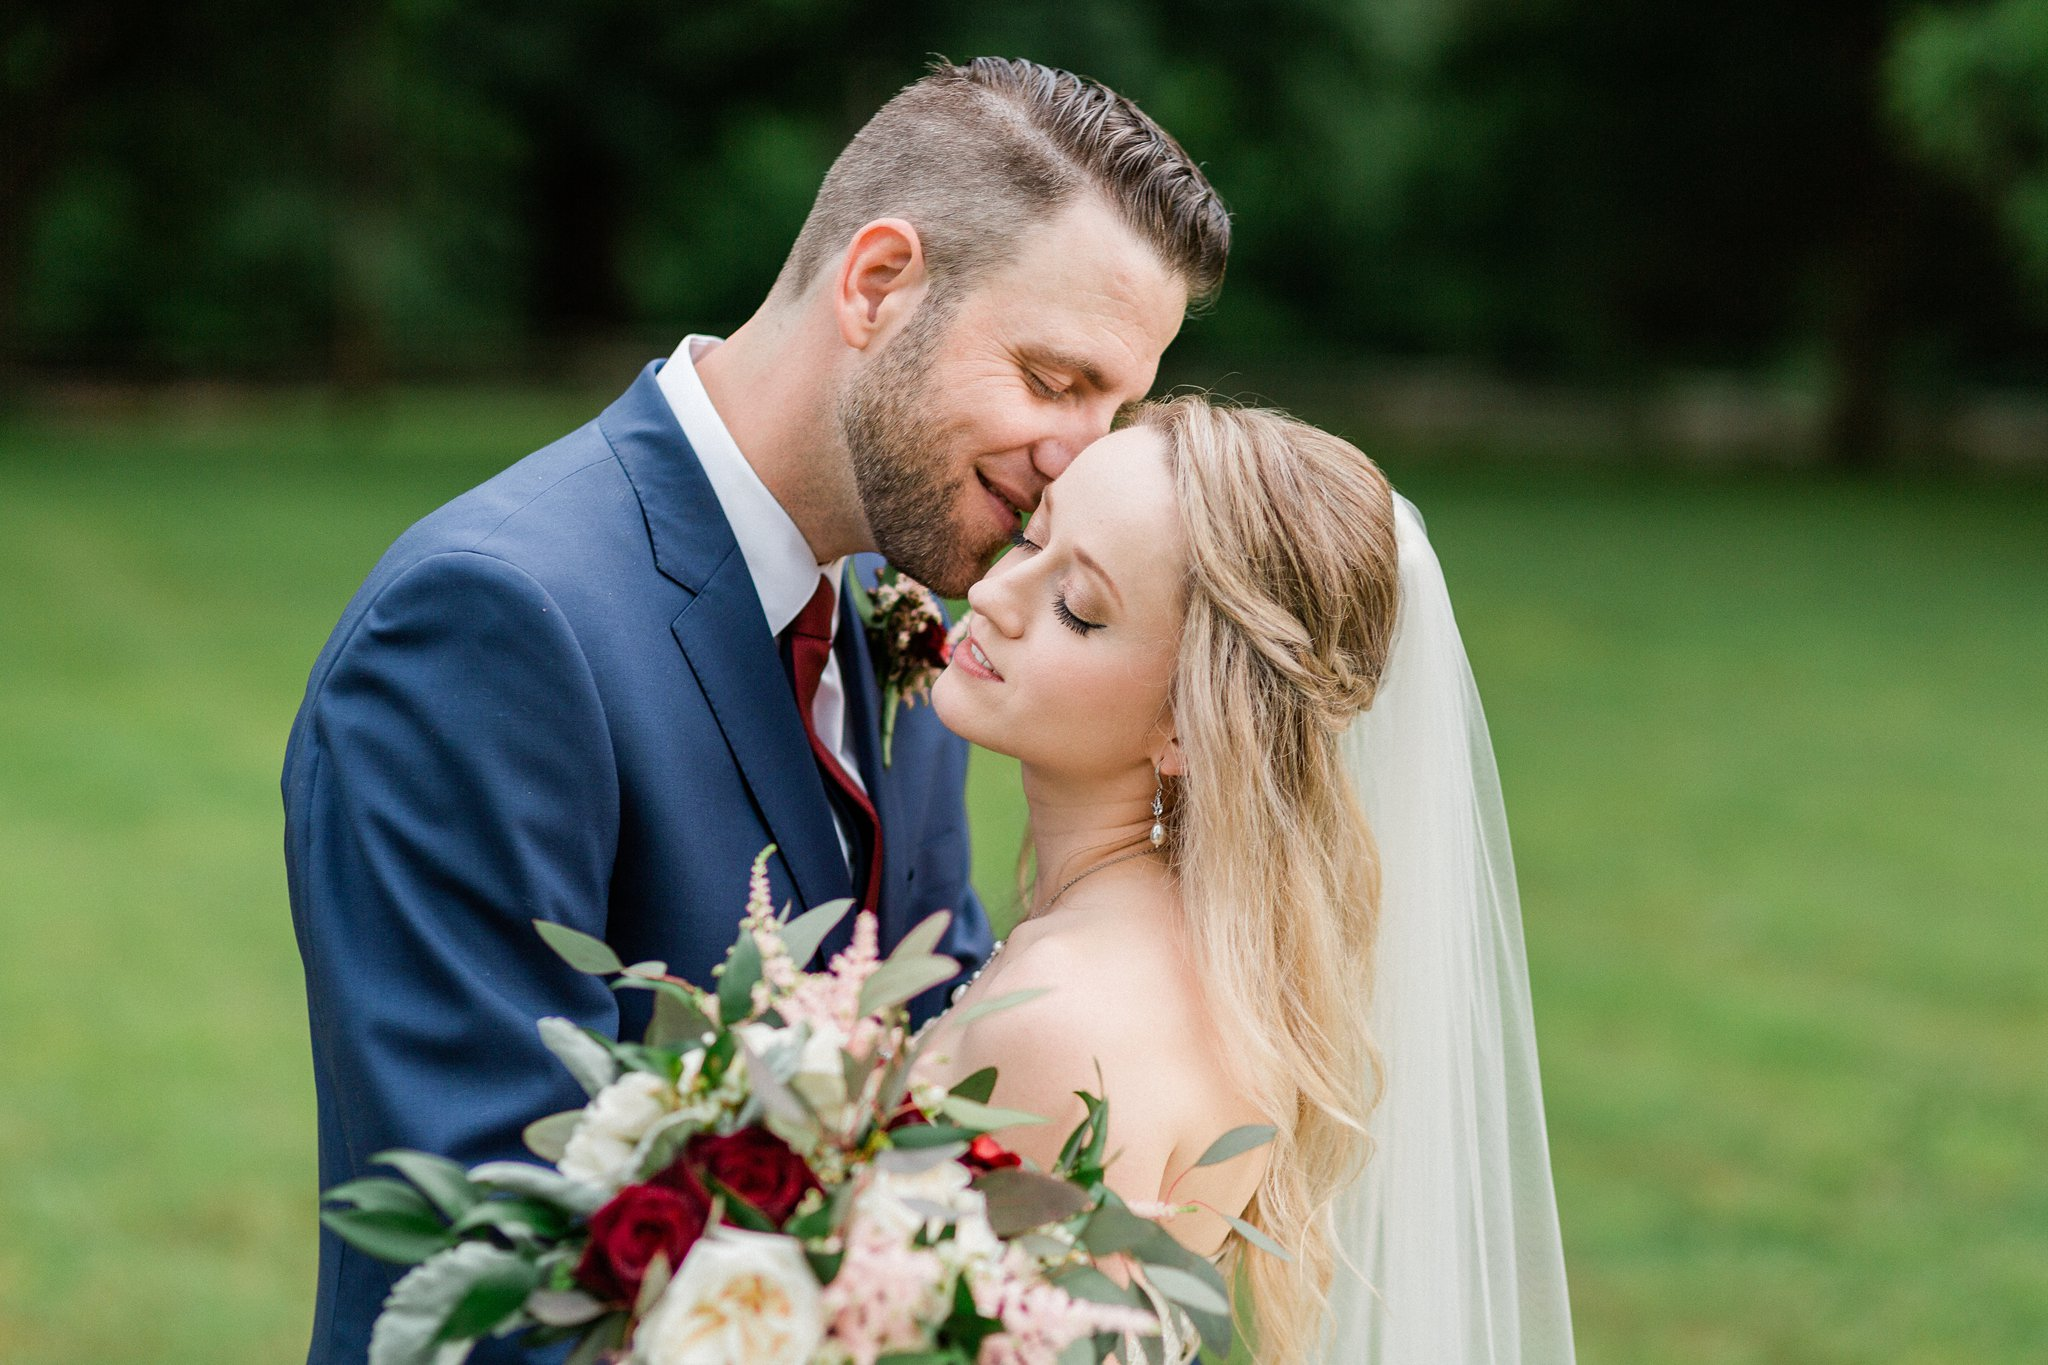 Cozy and Cute: Real Wedding